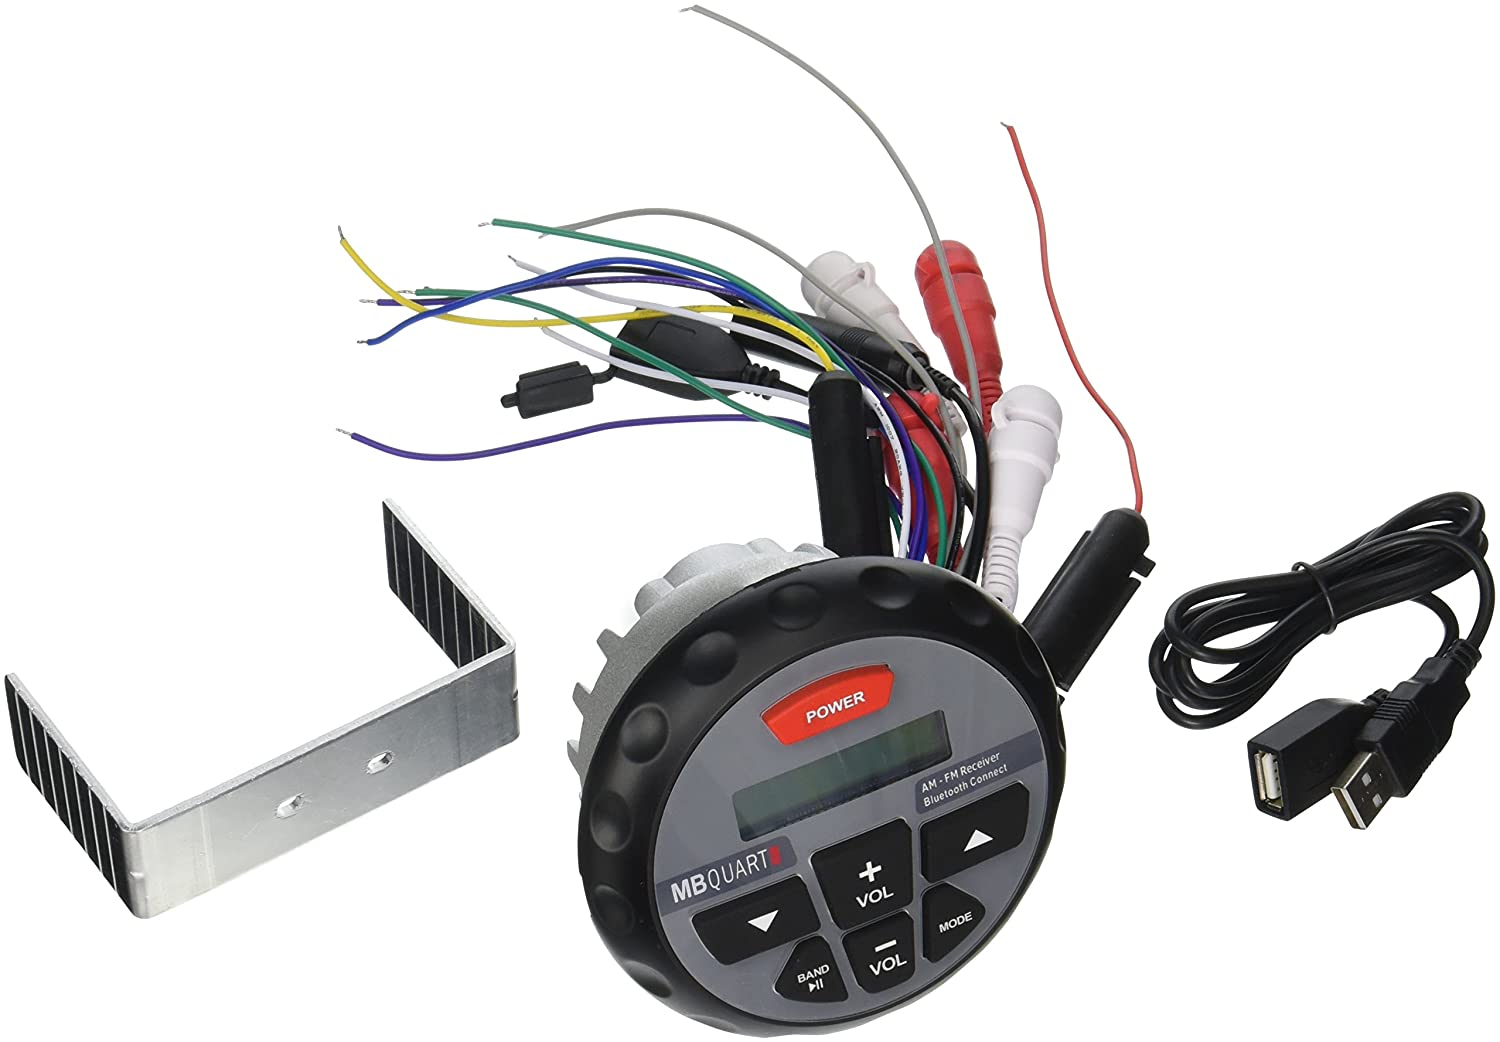 Mb Quart Crossover Wiring Diagram also Jbl Crossover Wiring Diagram Wiring Diagrams also Car Audio Wiring Diagrams further Radiator Wiring Harness also Crossover Wiring Diagram Car Audio. on mb quart crossover wiring diagram